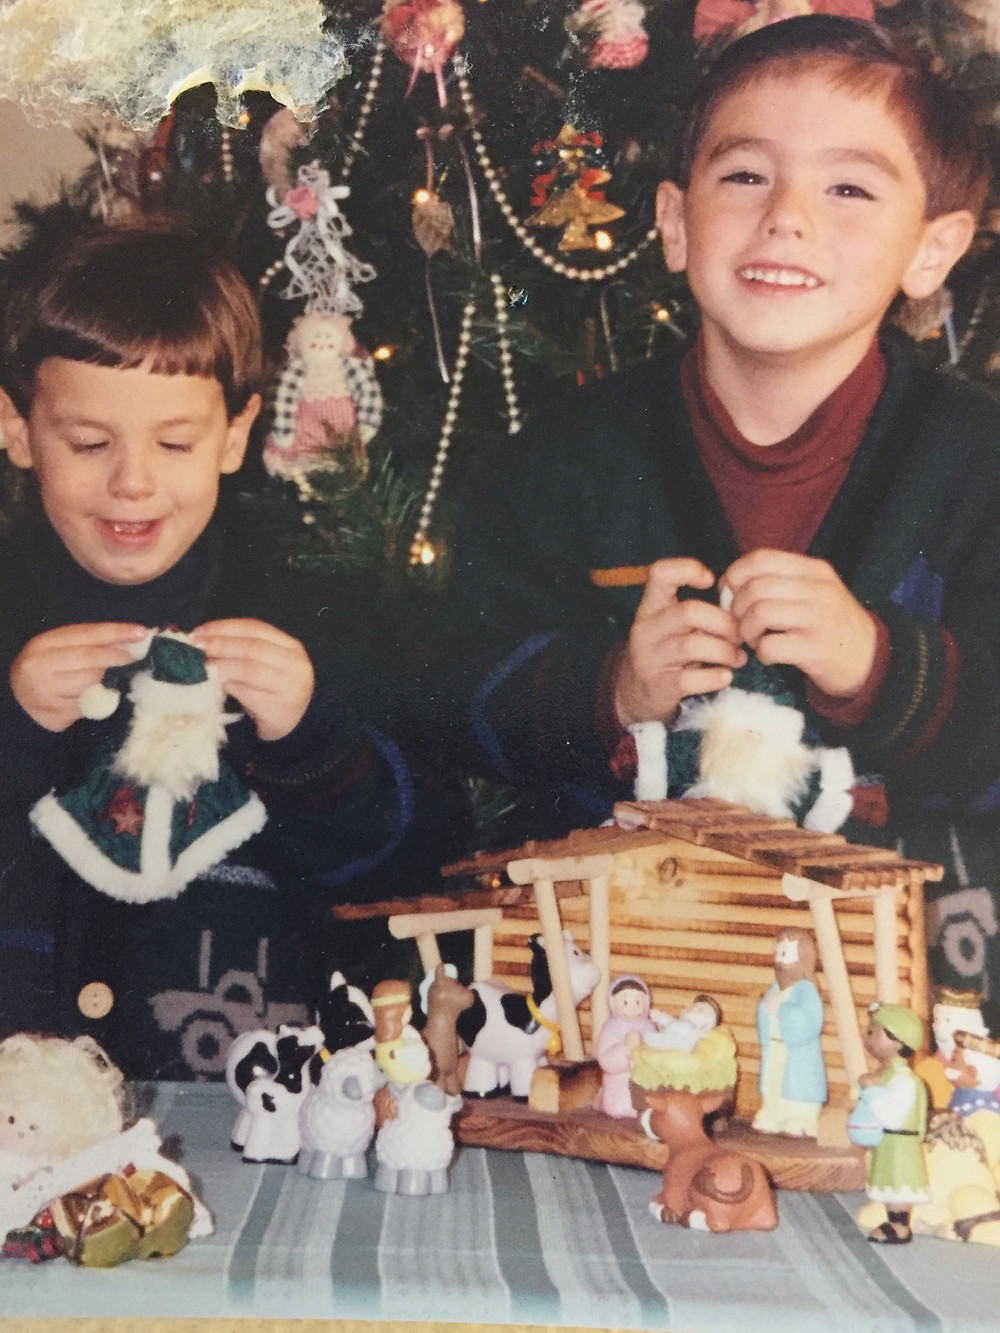 Two young boys playing with a manger scene